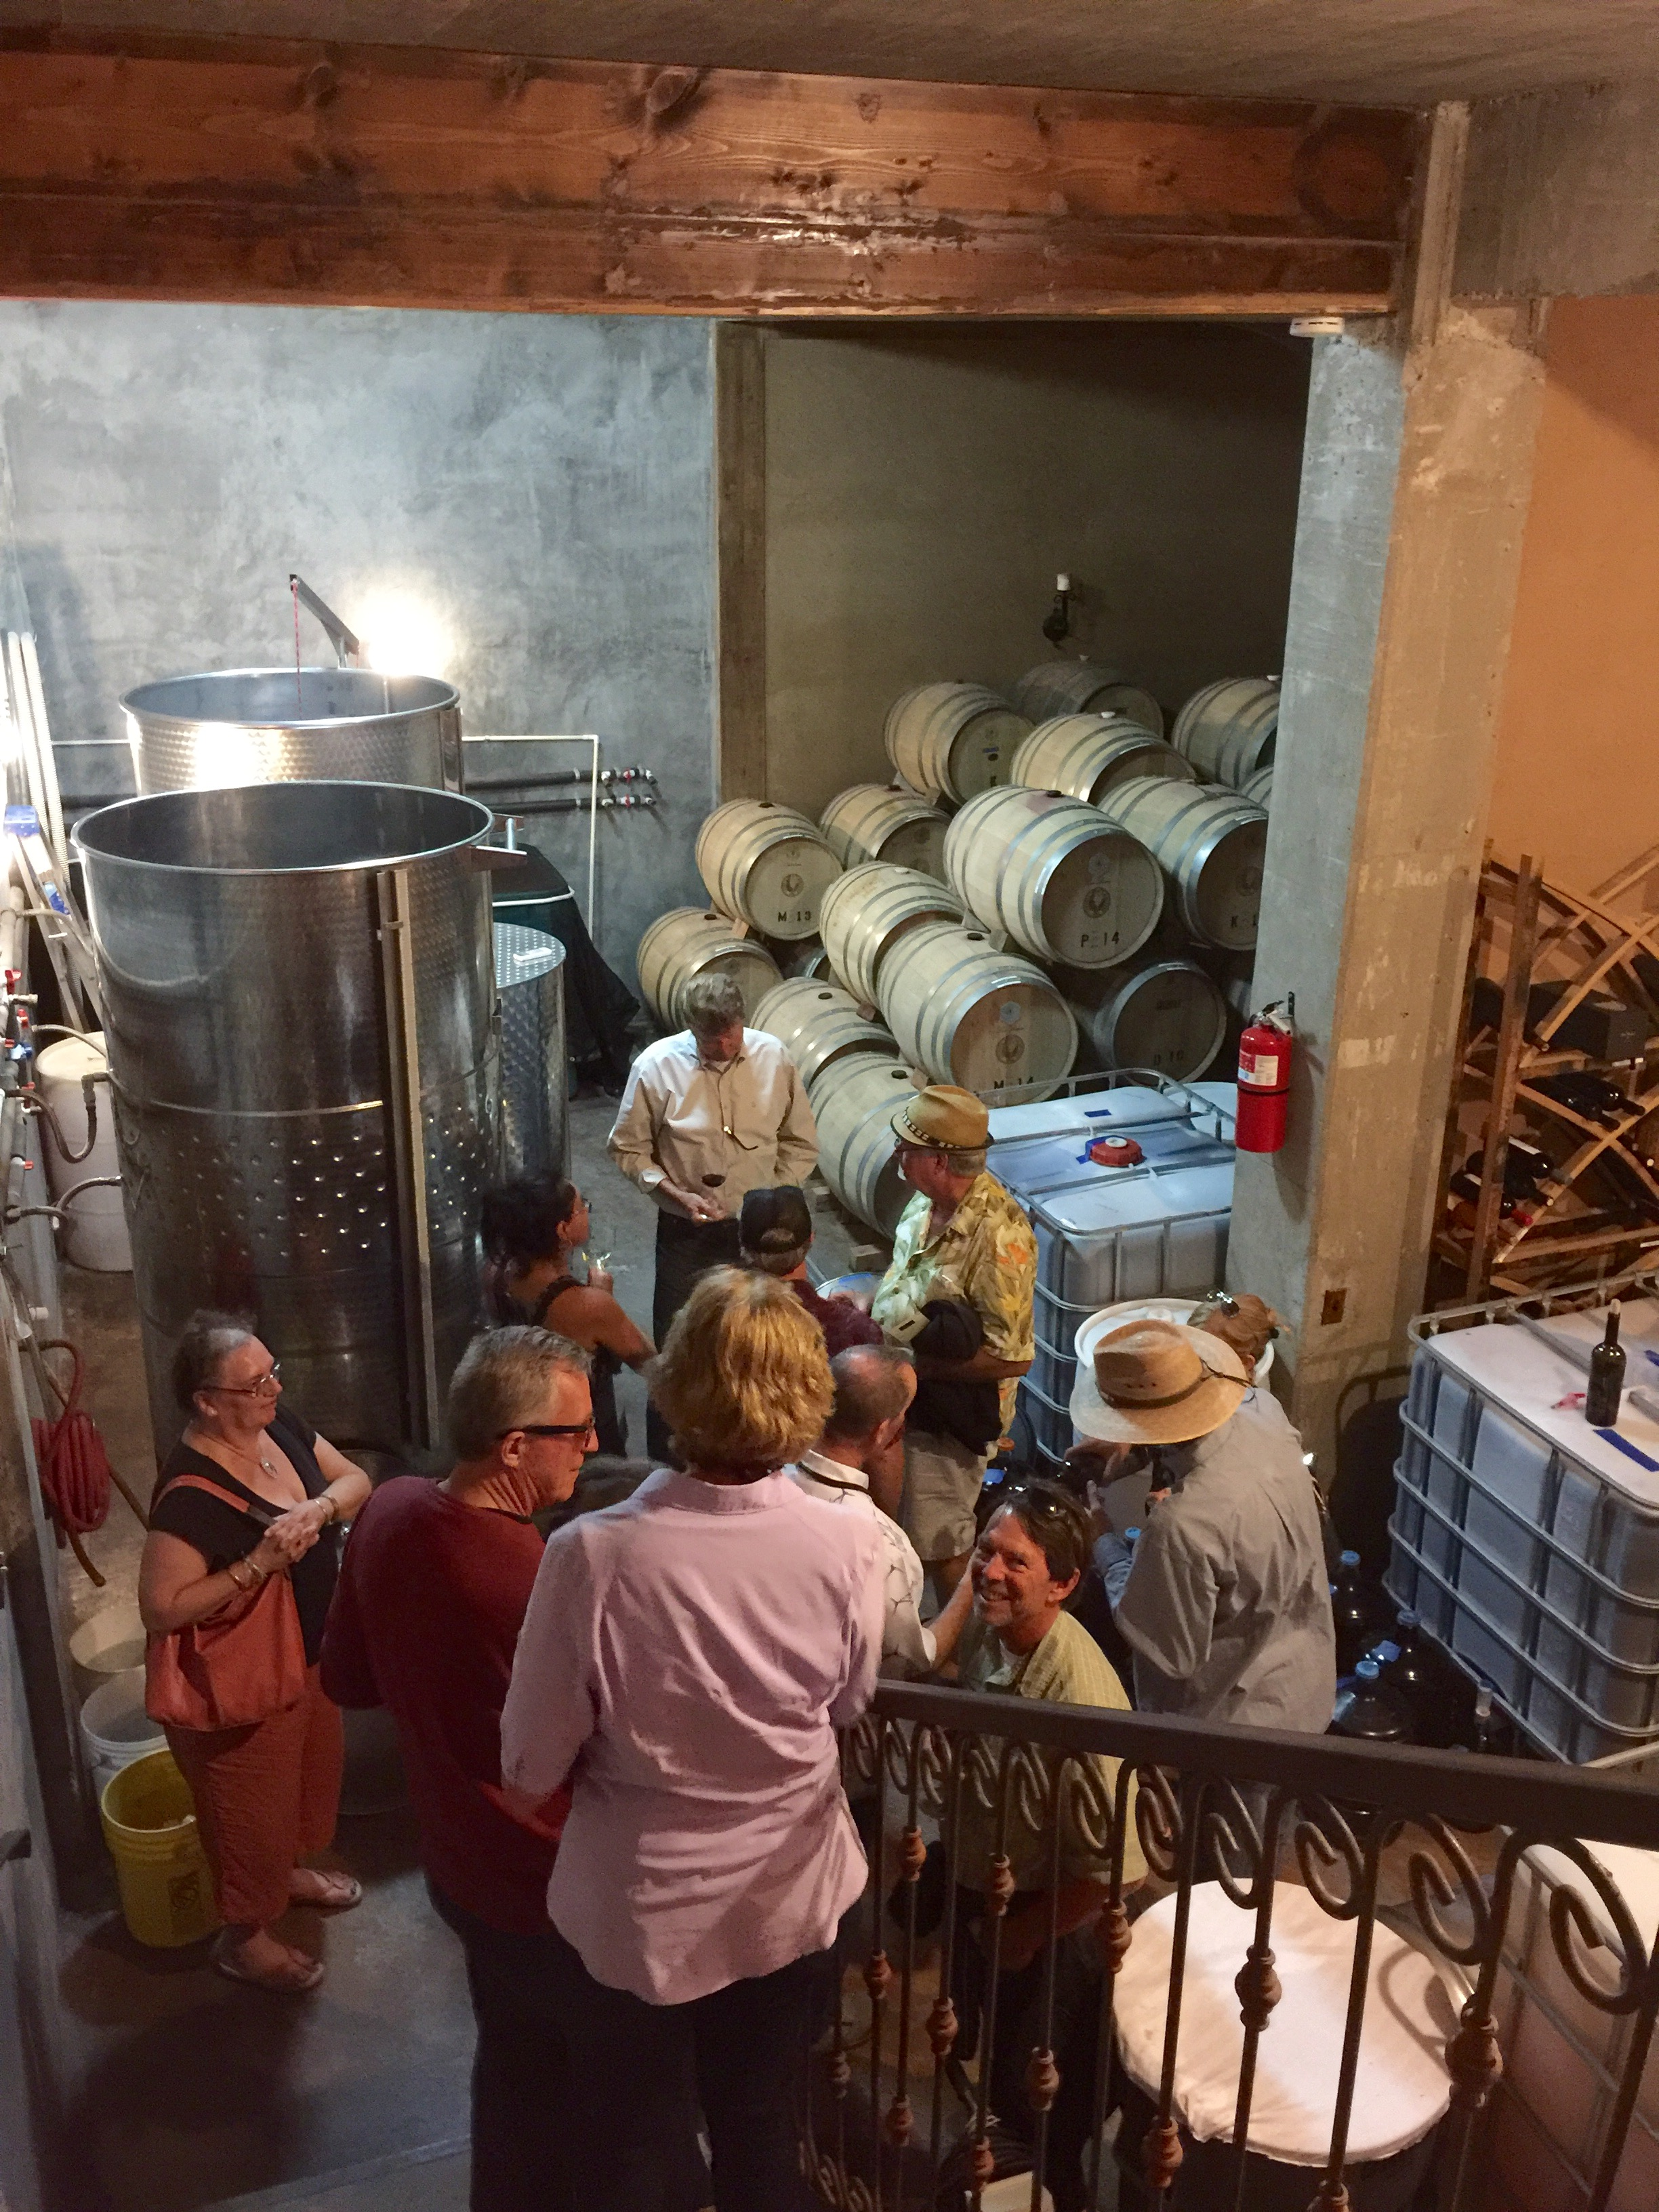 Ray giving out barrel samples in the barrel room at Lechuza.